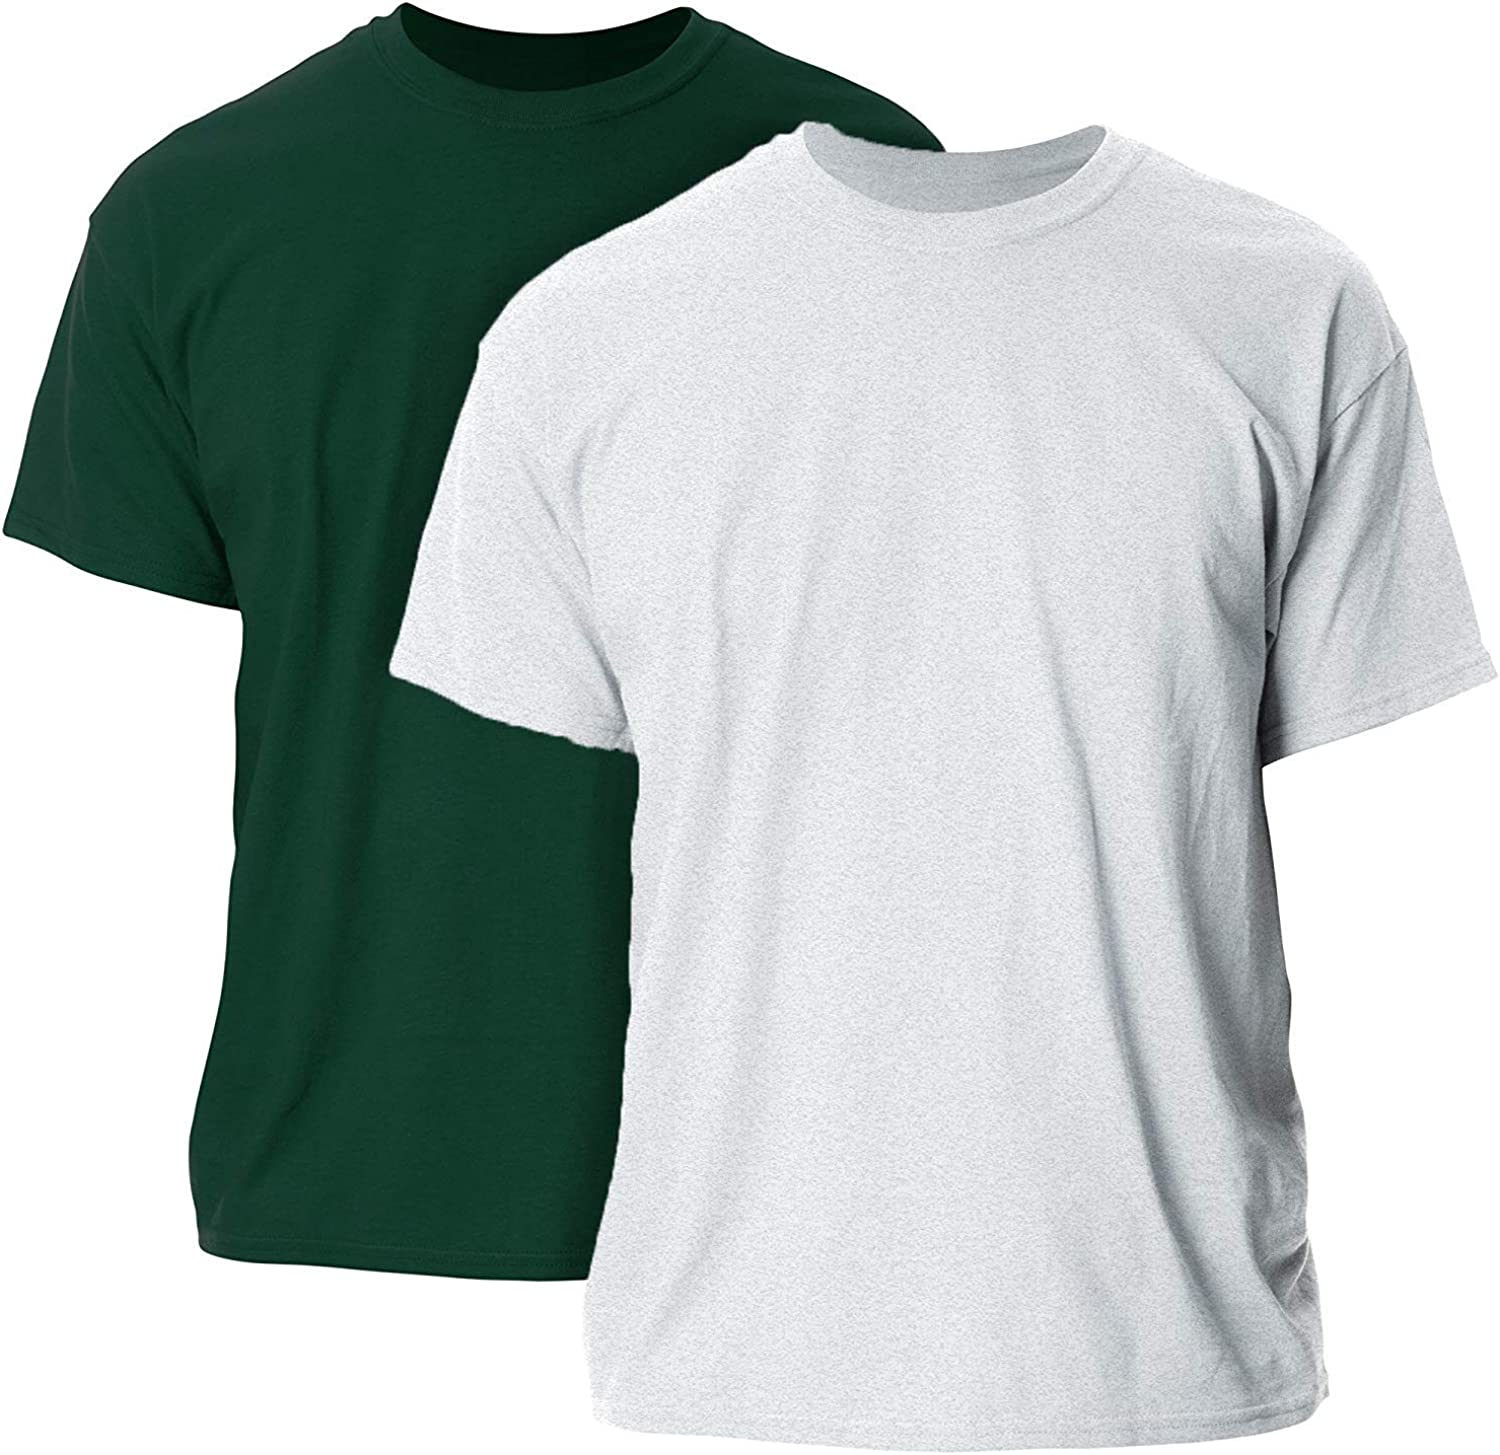 2-Pack Gildan Mens G2000 Ultra Cotton Adult T-Shirt